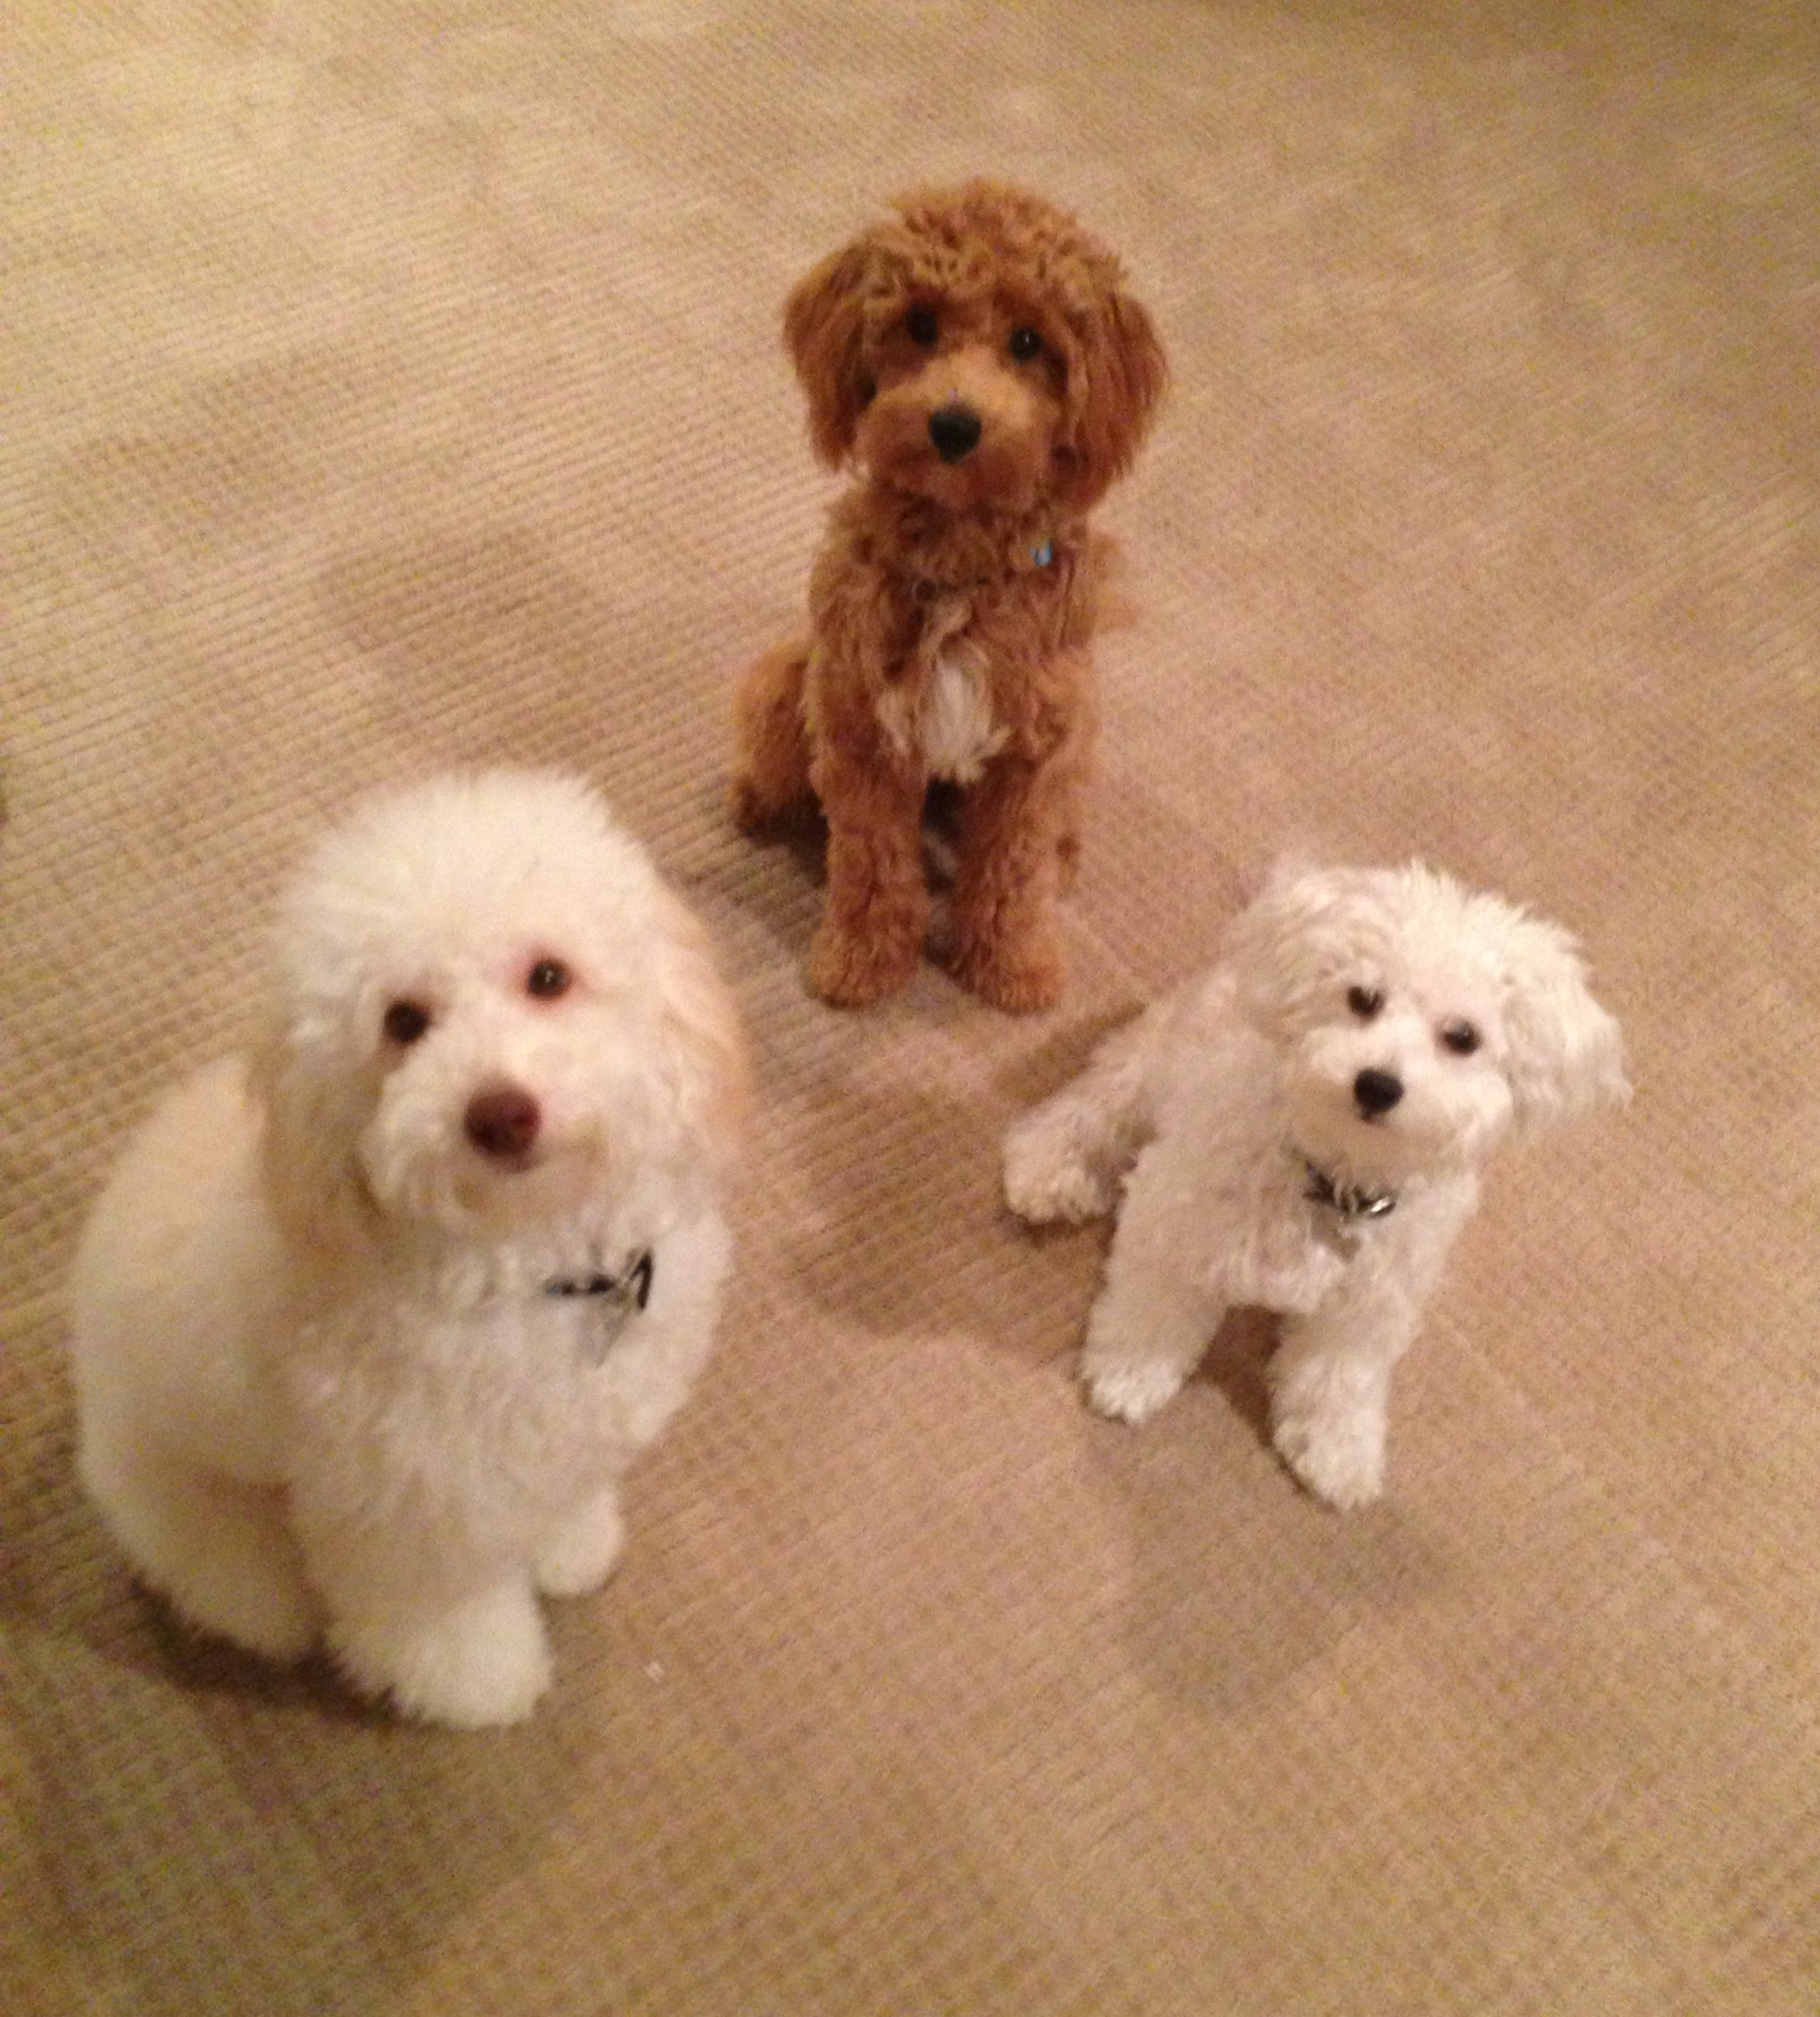 Teddy, Tobe, and Lola